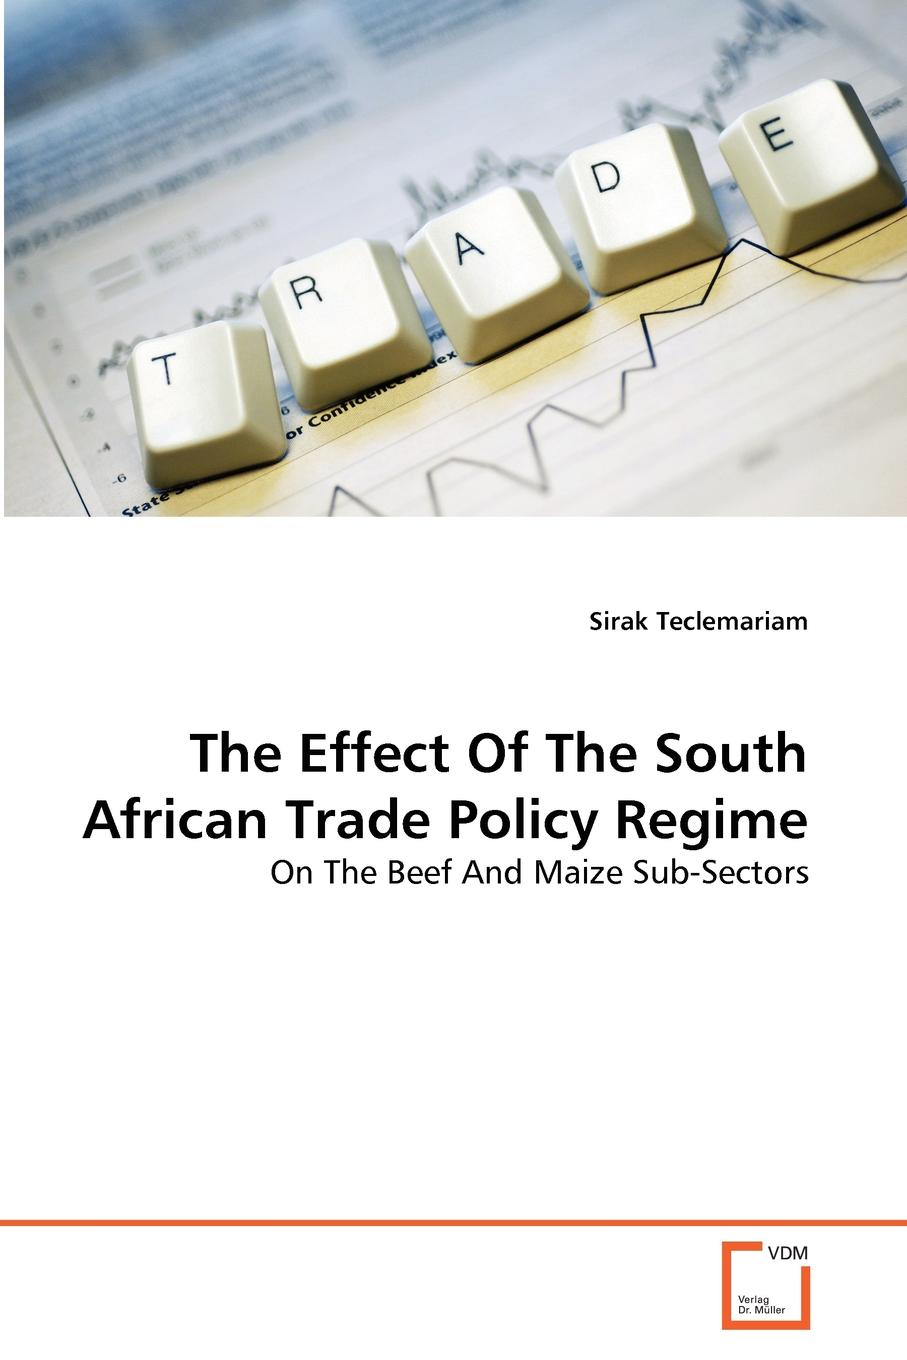 Sirak Teclemariam The Effect Of The South African Trade Policy Regime vishaal kishore ricardo s gauntlet economic fiction and the flawed case for free trade